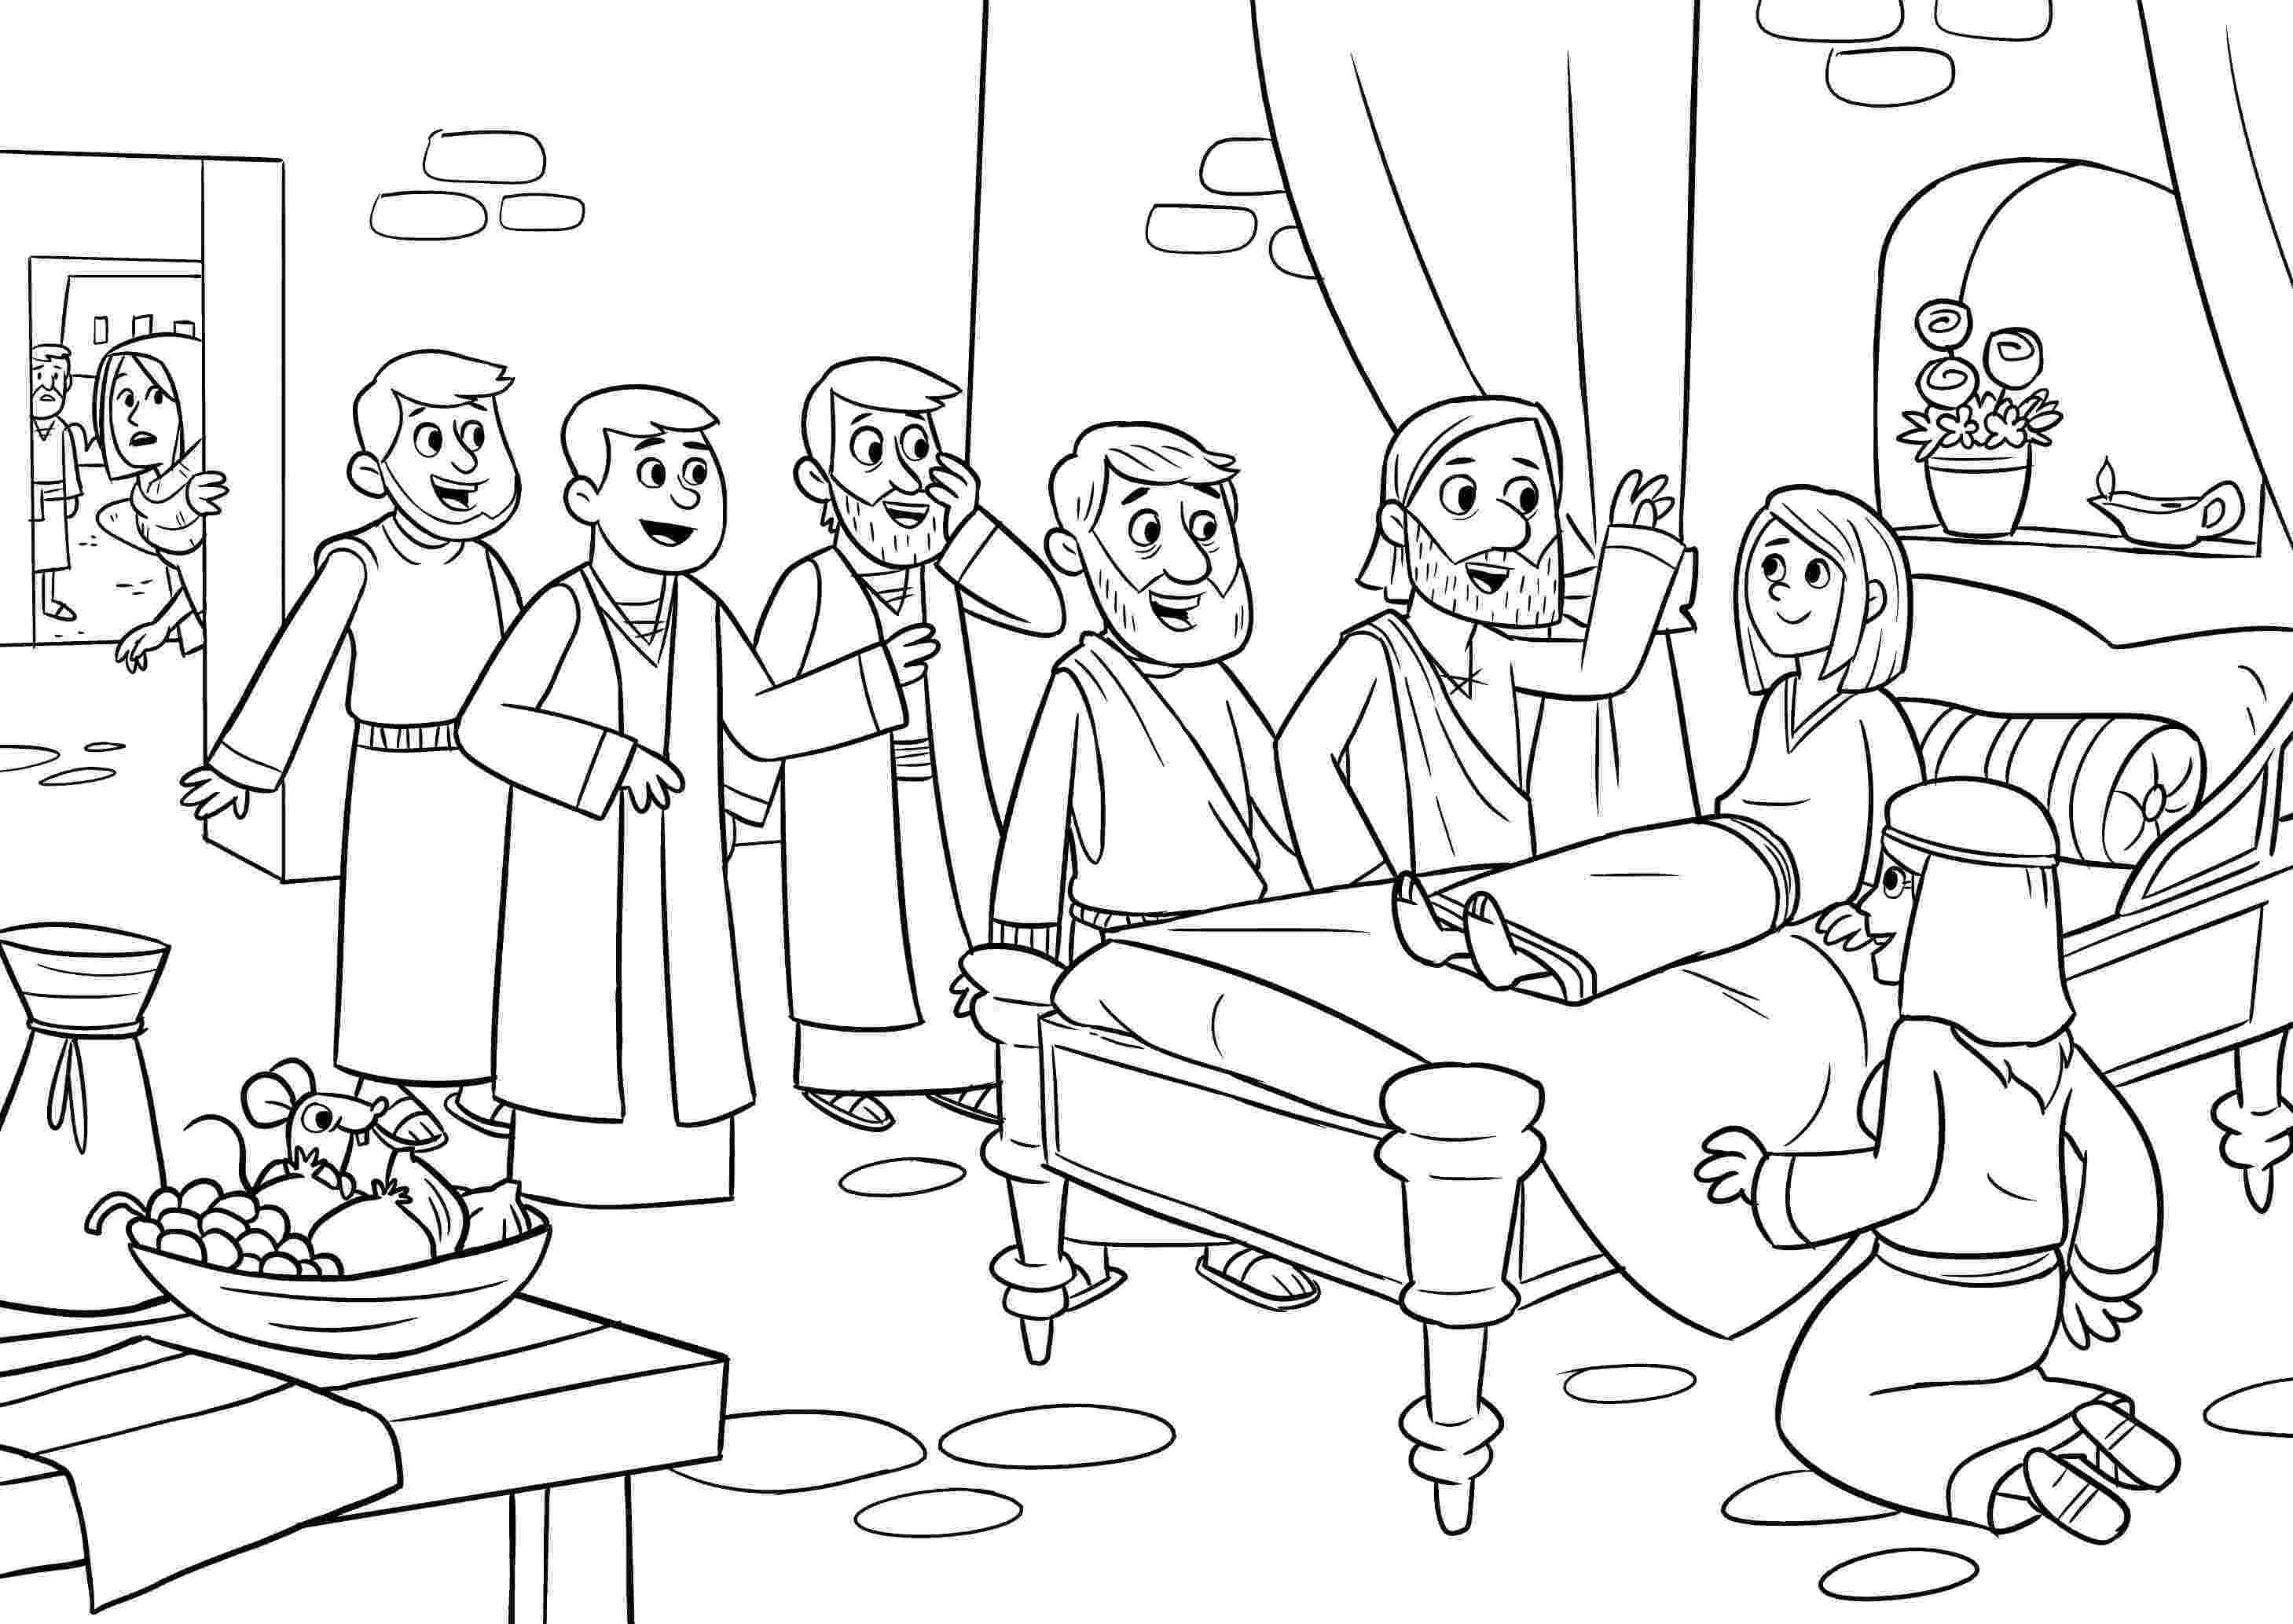 bible coloring pages for 2 year olds free drawing worksheets at getdrawingscom free for 2 bible for pages coloring year olds